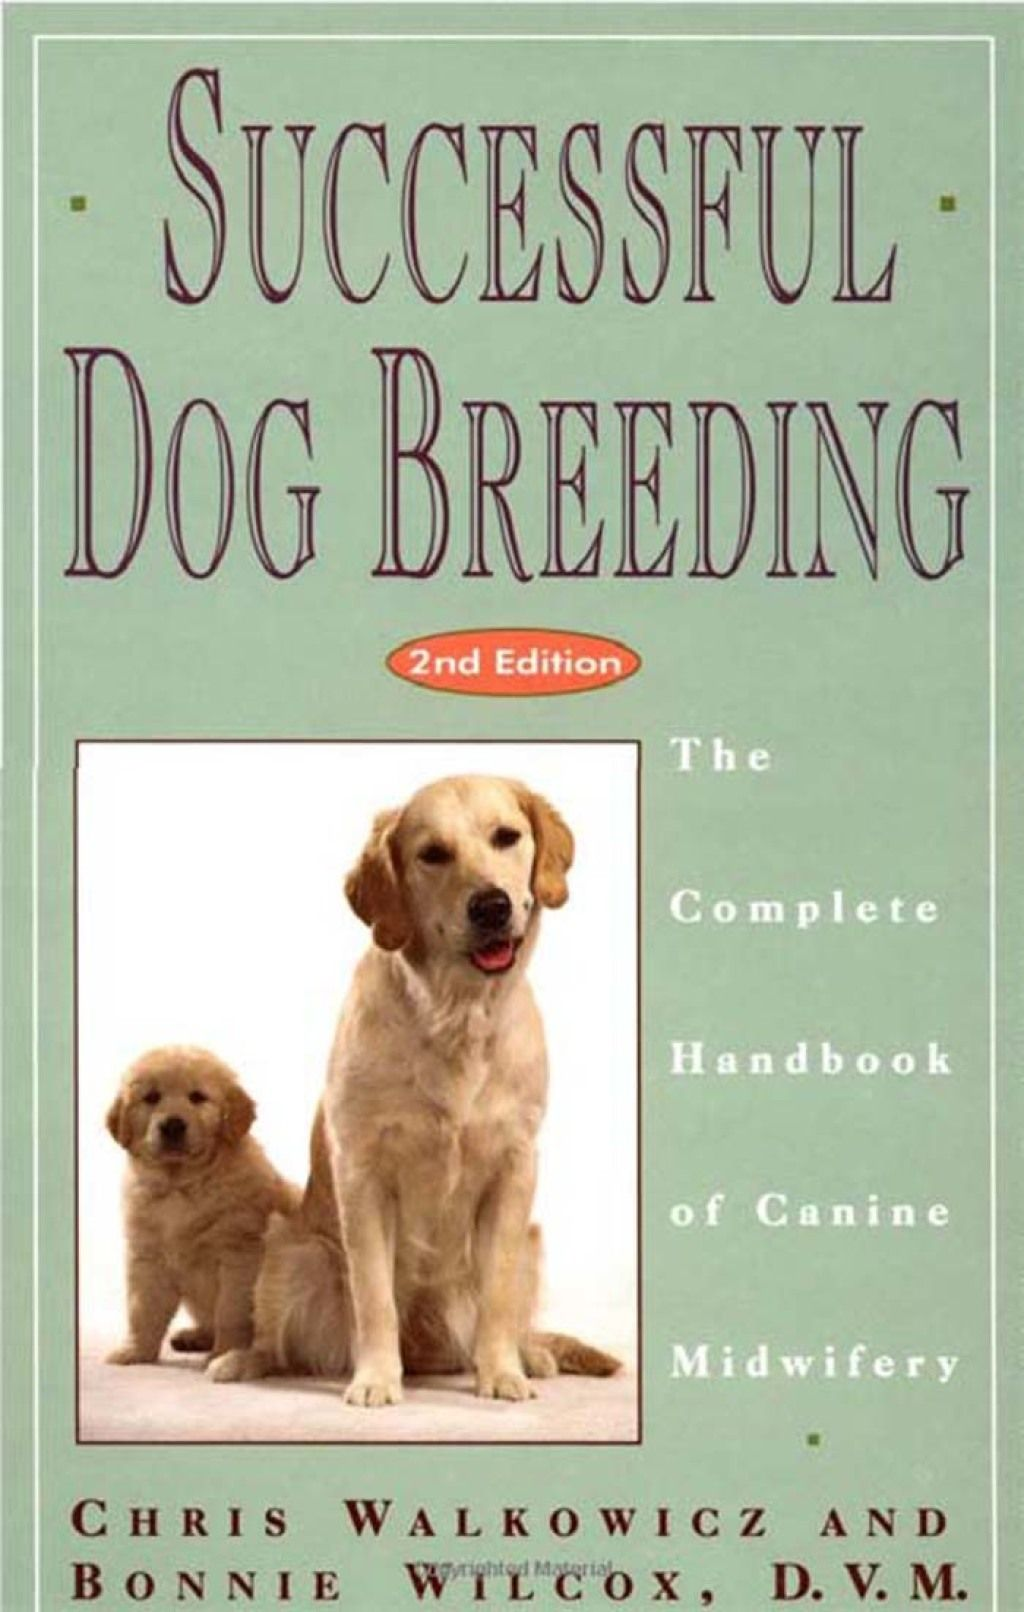 Successful Dog Breeding The Complete Handbook Of Canine Midwifery